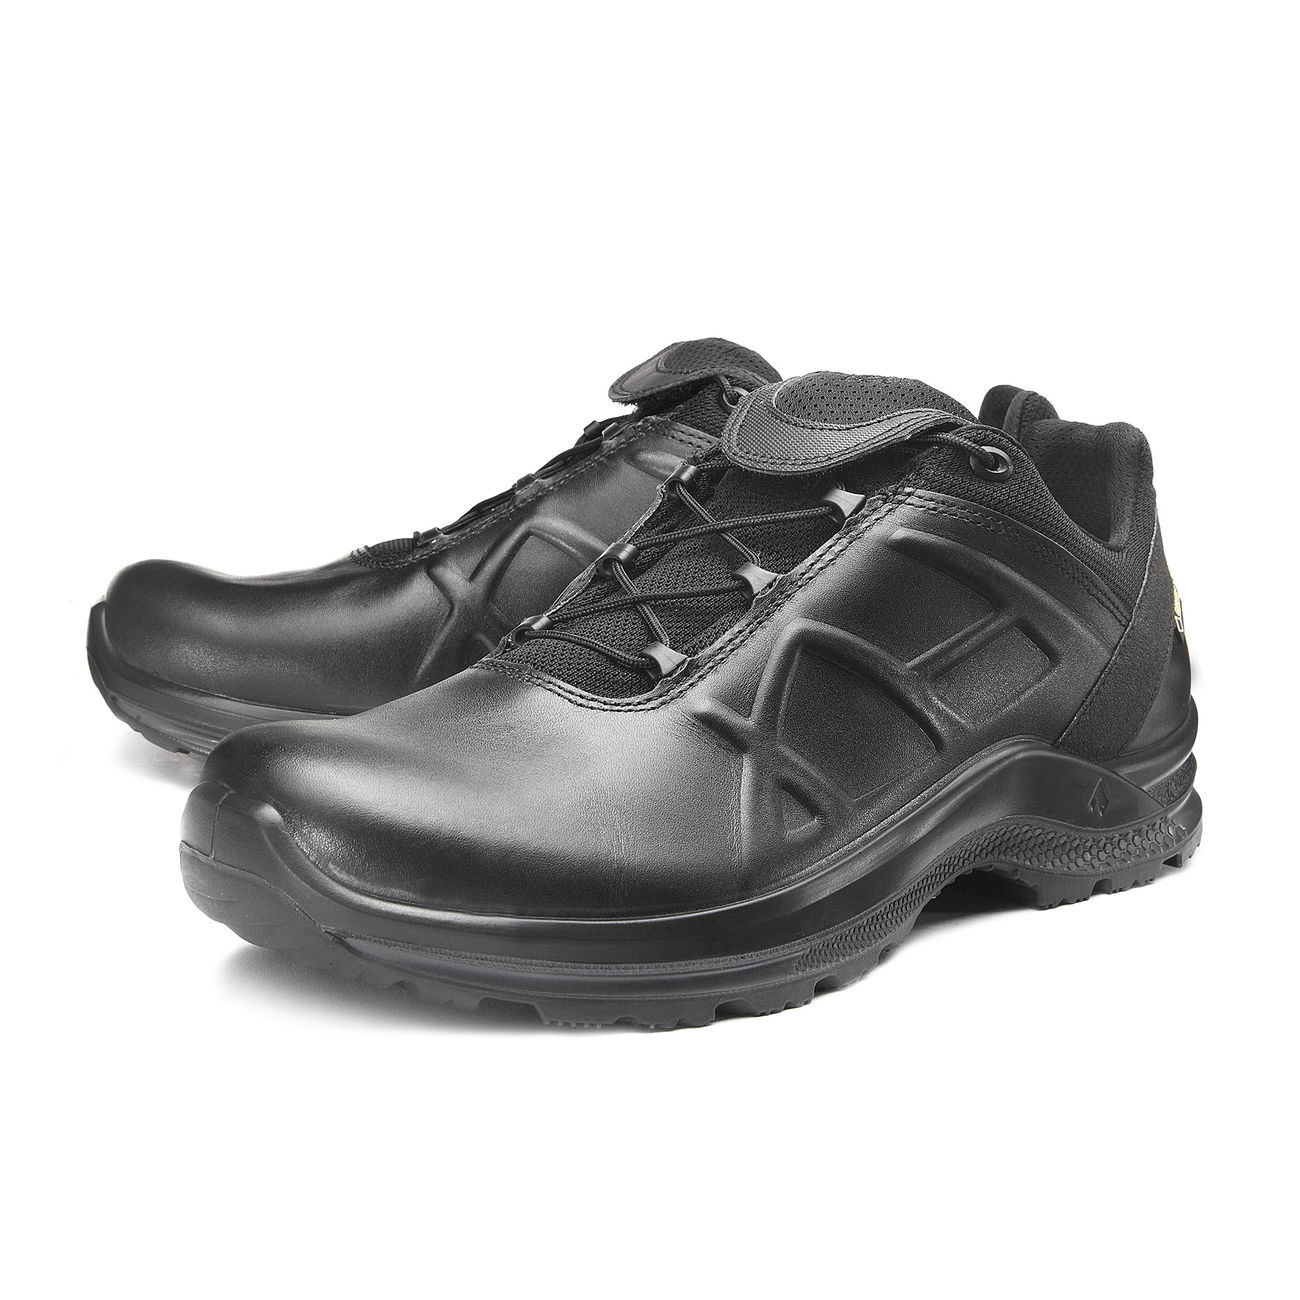 Haix Halbschuh Black Eagle Tactical 2.0 GTX Low schwarz 2